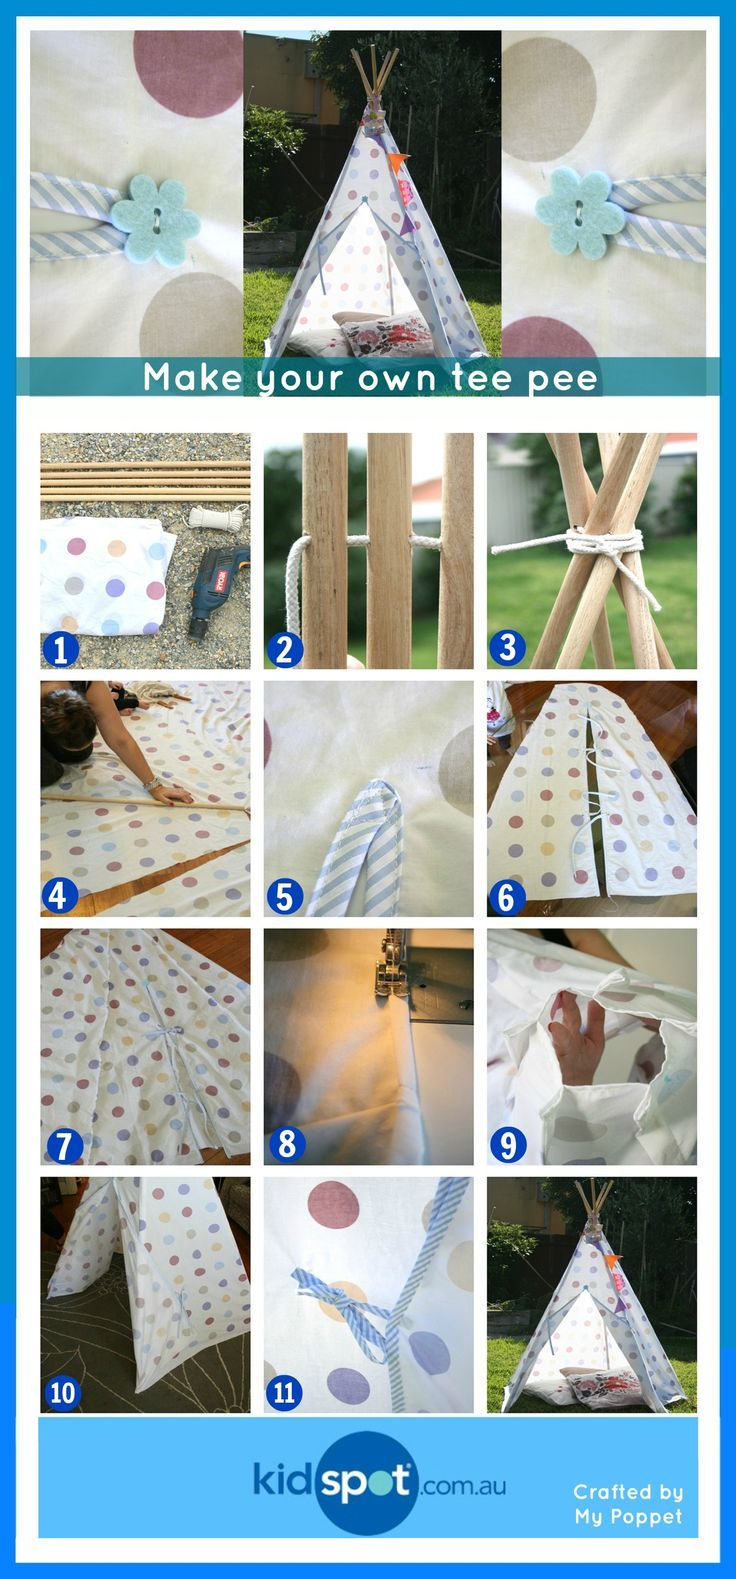 Make your own tee pee & Make your own tee pee | Sleepover party Party activities and ...